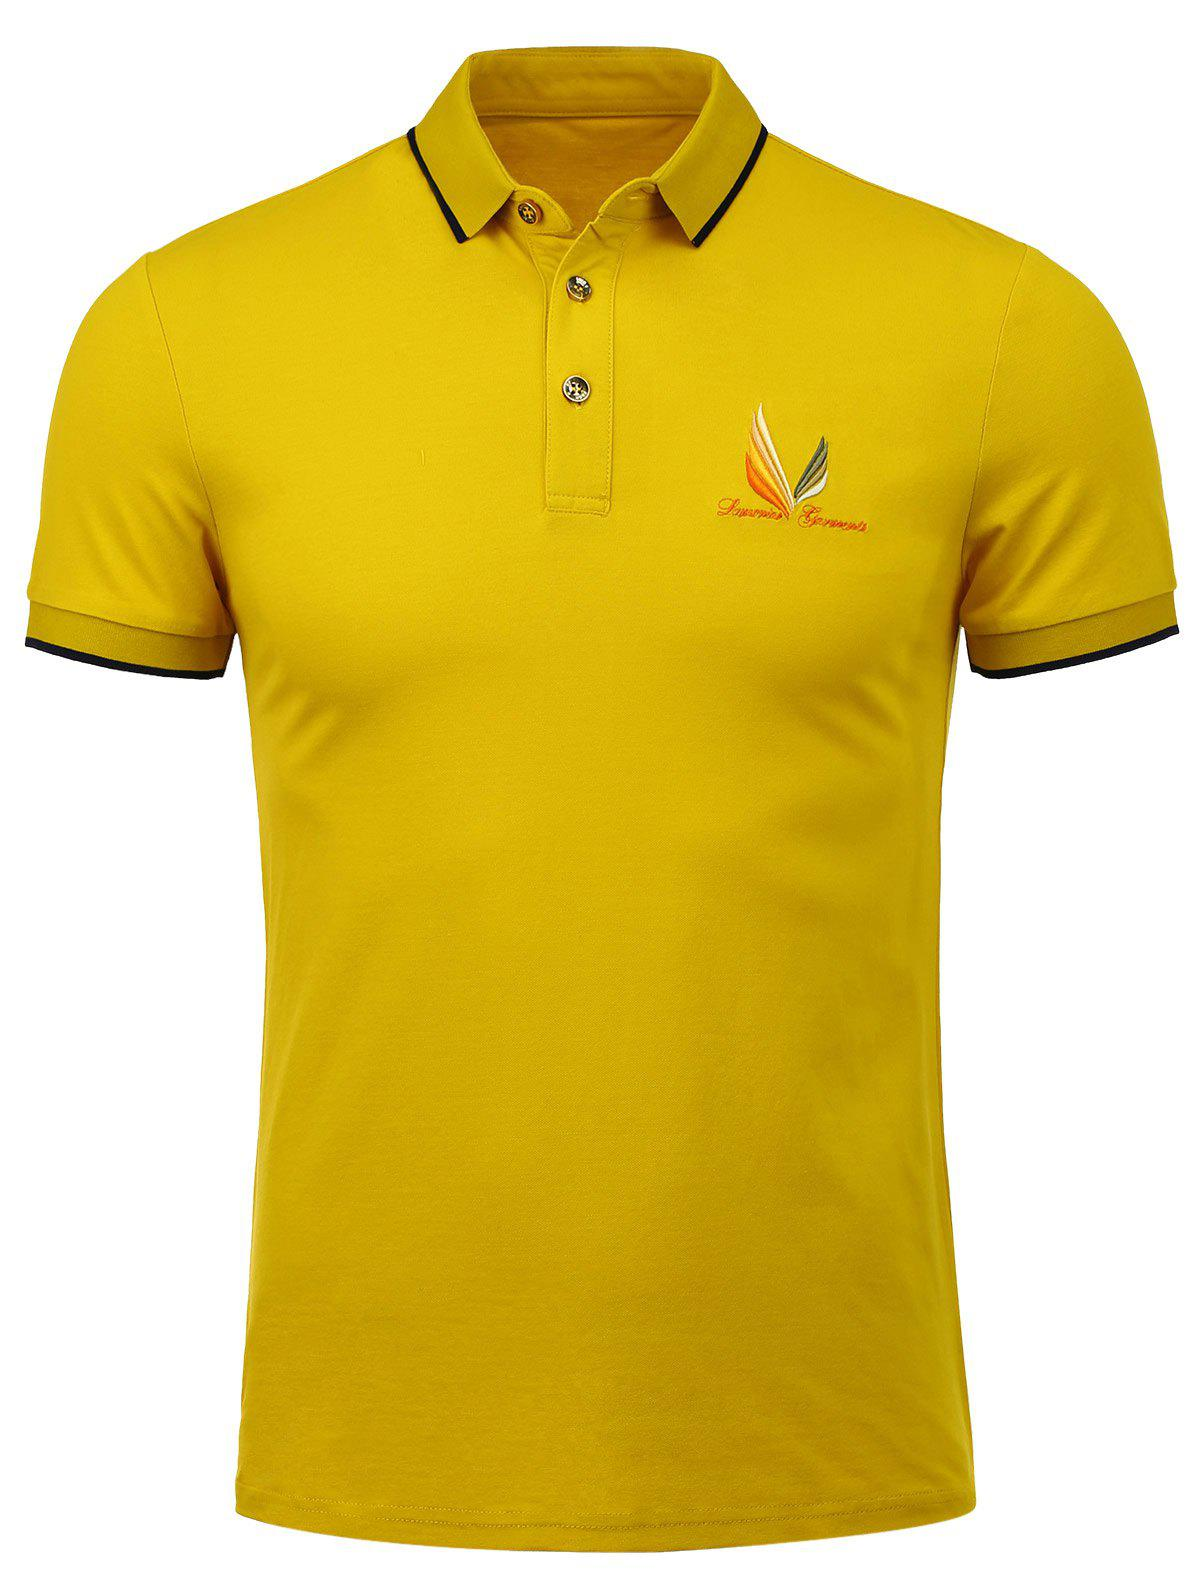 2018 half button embroidered polo shirt ginger s in t for Polo shirts with embroidery